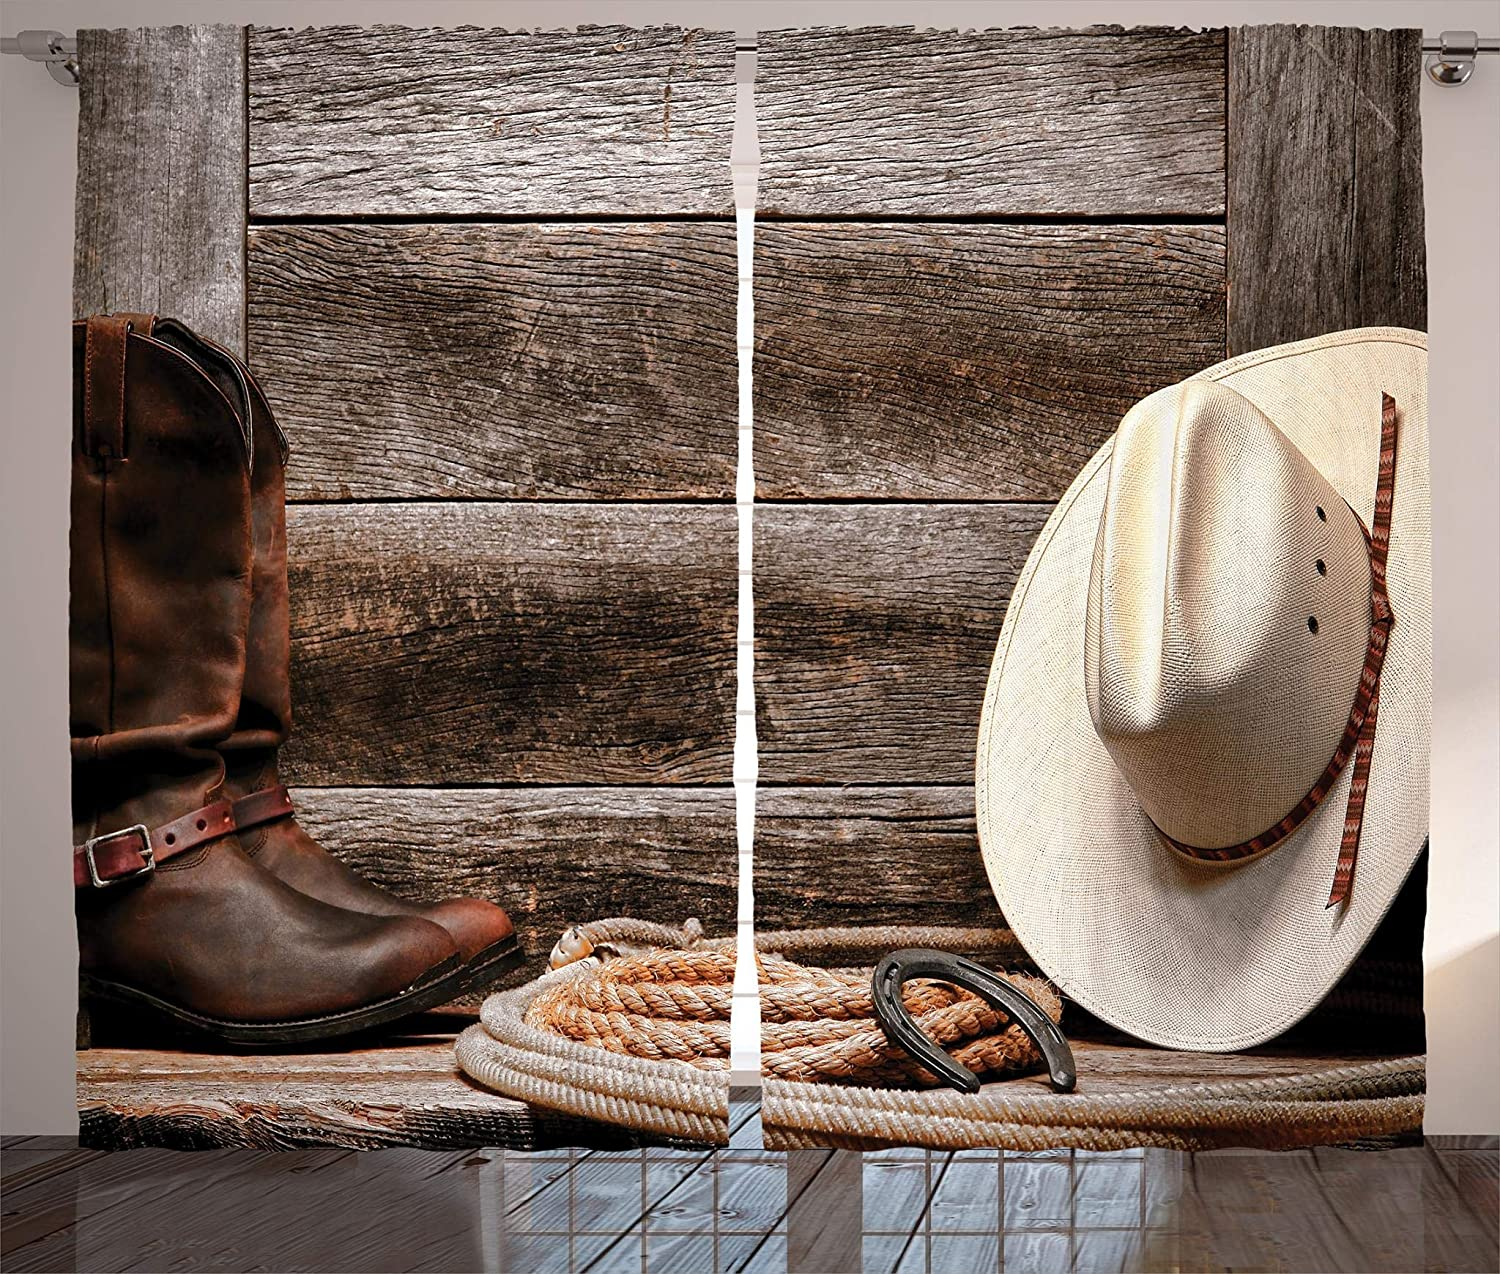 aed6abfe91b Ambesonne Western Decor Collection, American West Rodeo Traditional Straw  Cowboy Hat with Authentic Leather Boots Print, Window Treatments, Bedroom  ...